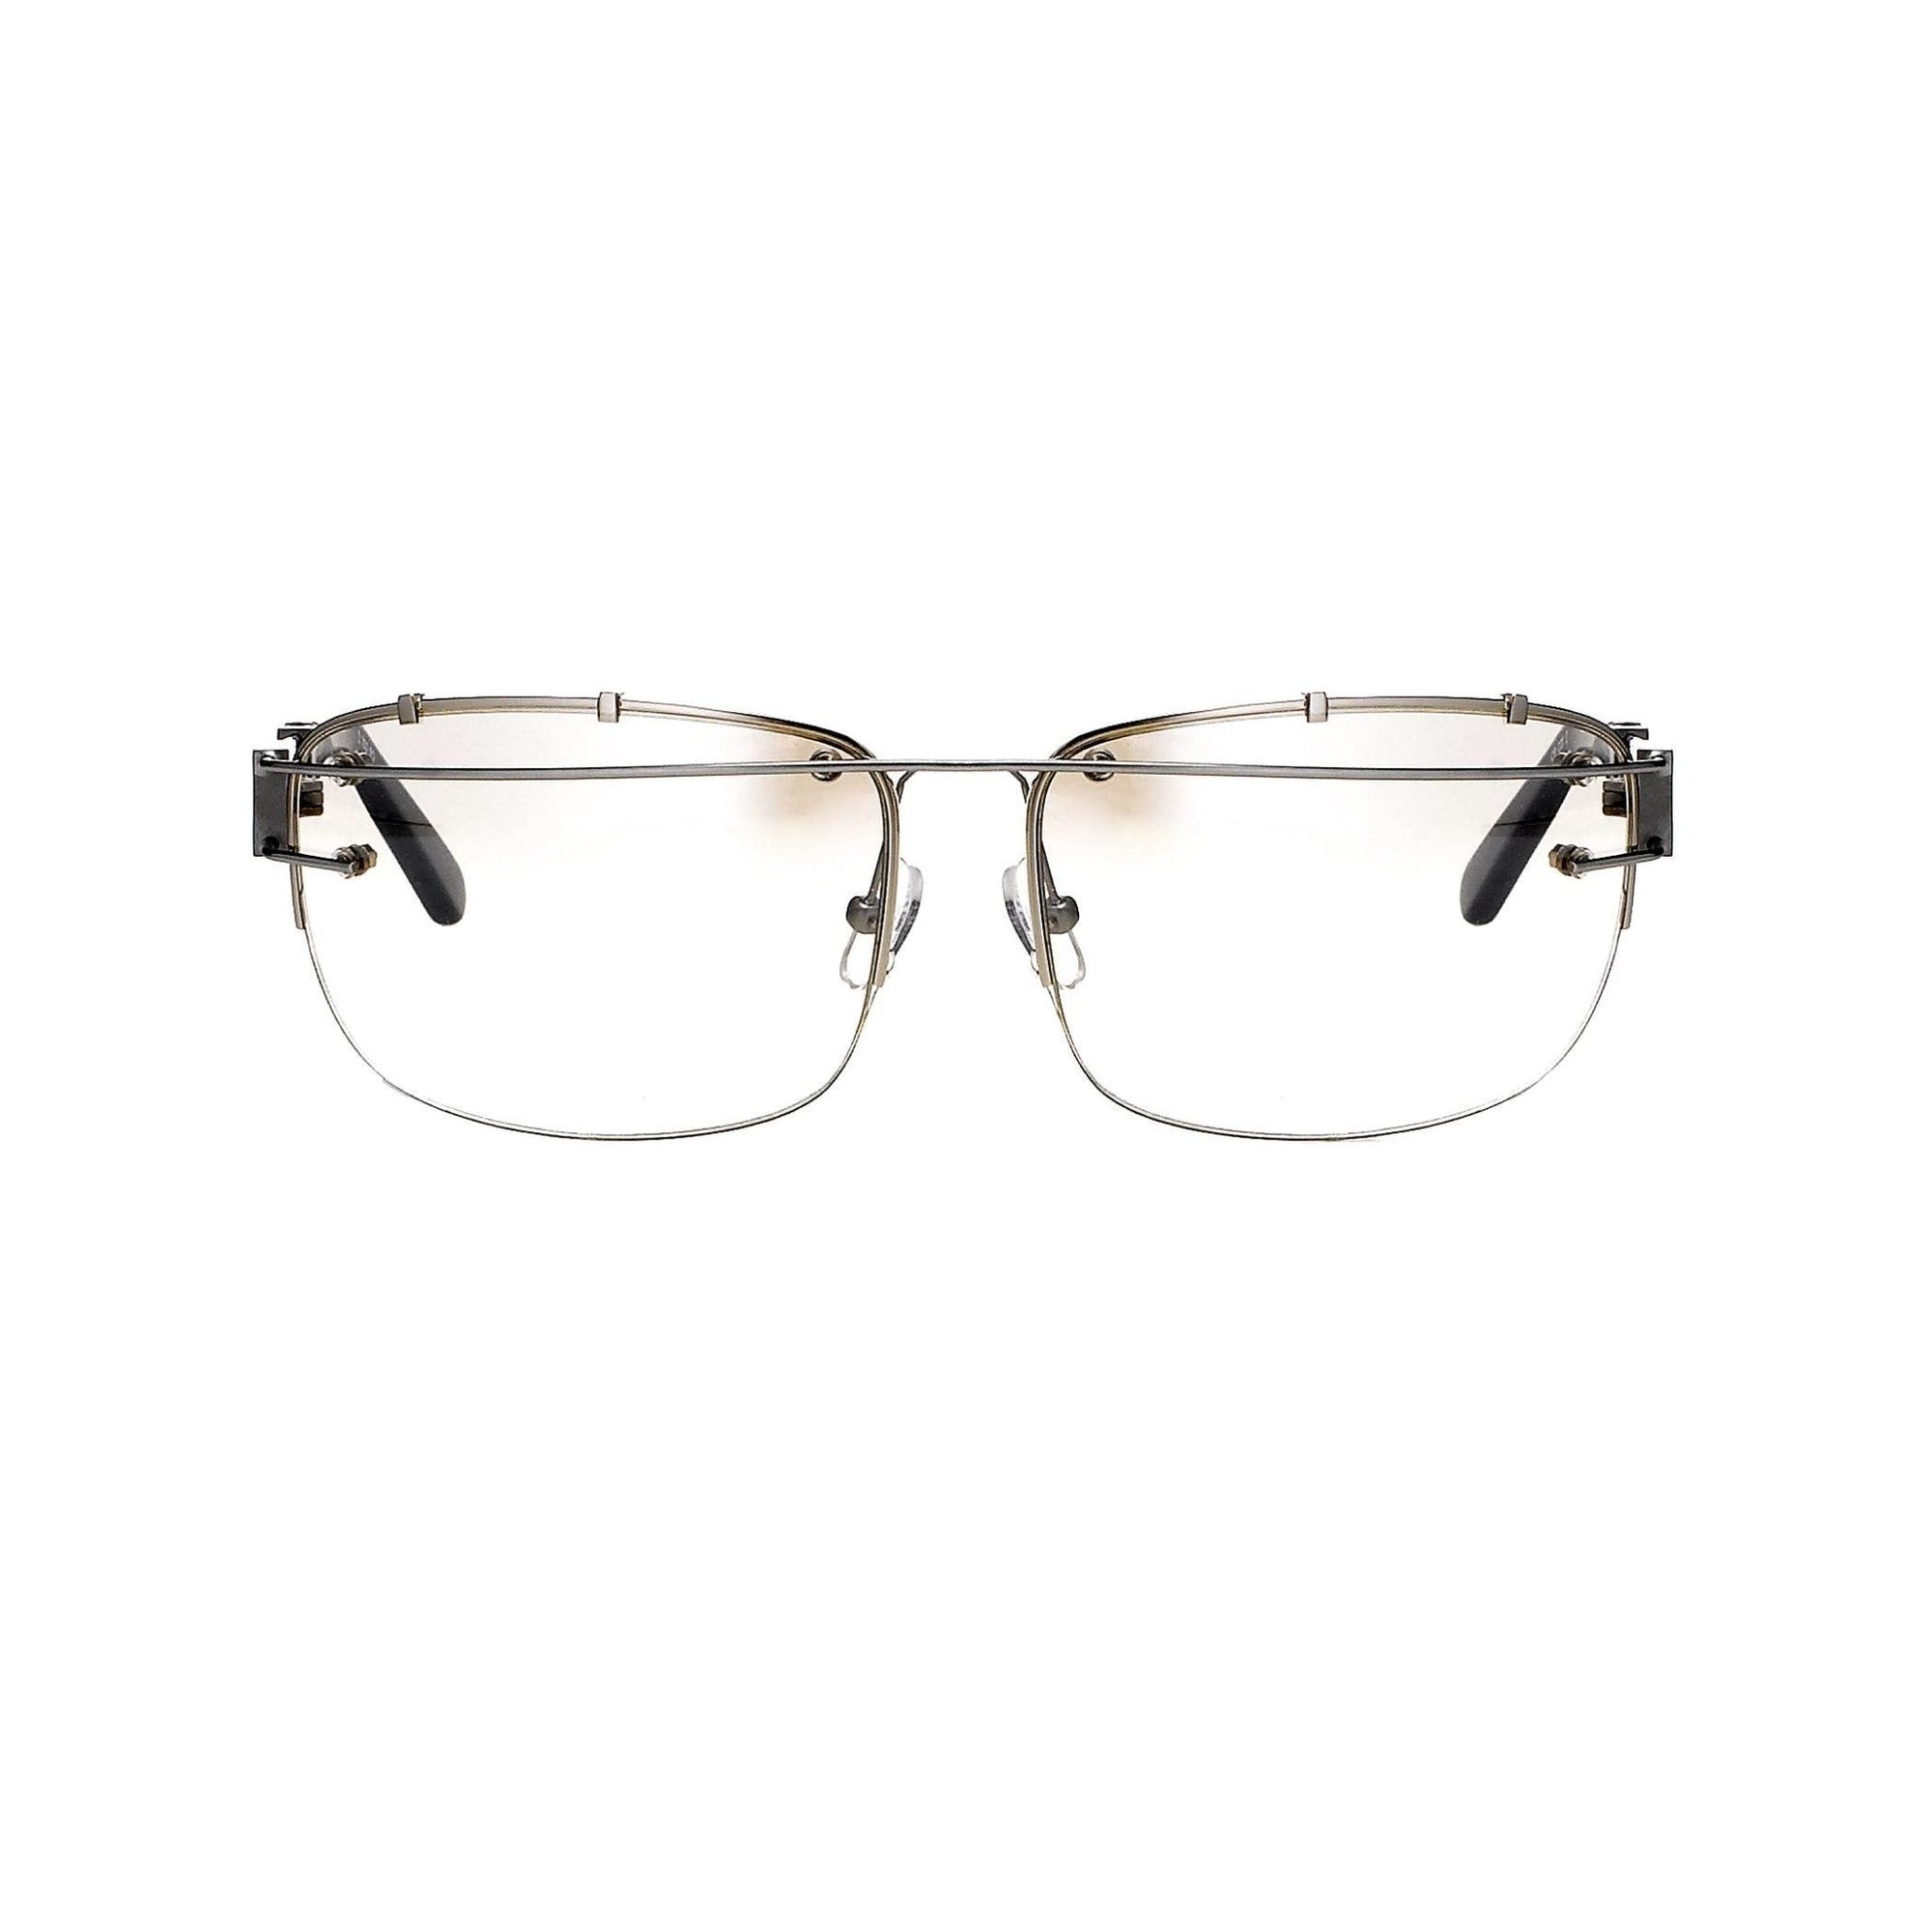 Yohji Yamamoto Unisex Sunglasses Rectangular Silver and Brown Graduated Lenses - 9YY100C2SHINYSILVER - Watches & Crystals